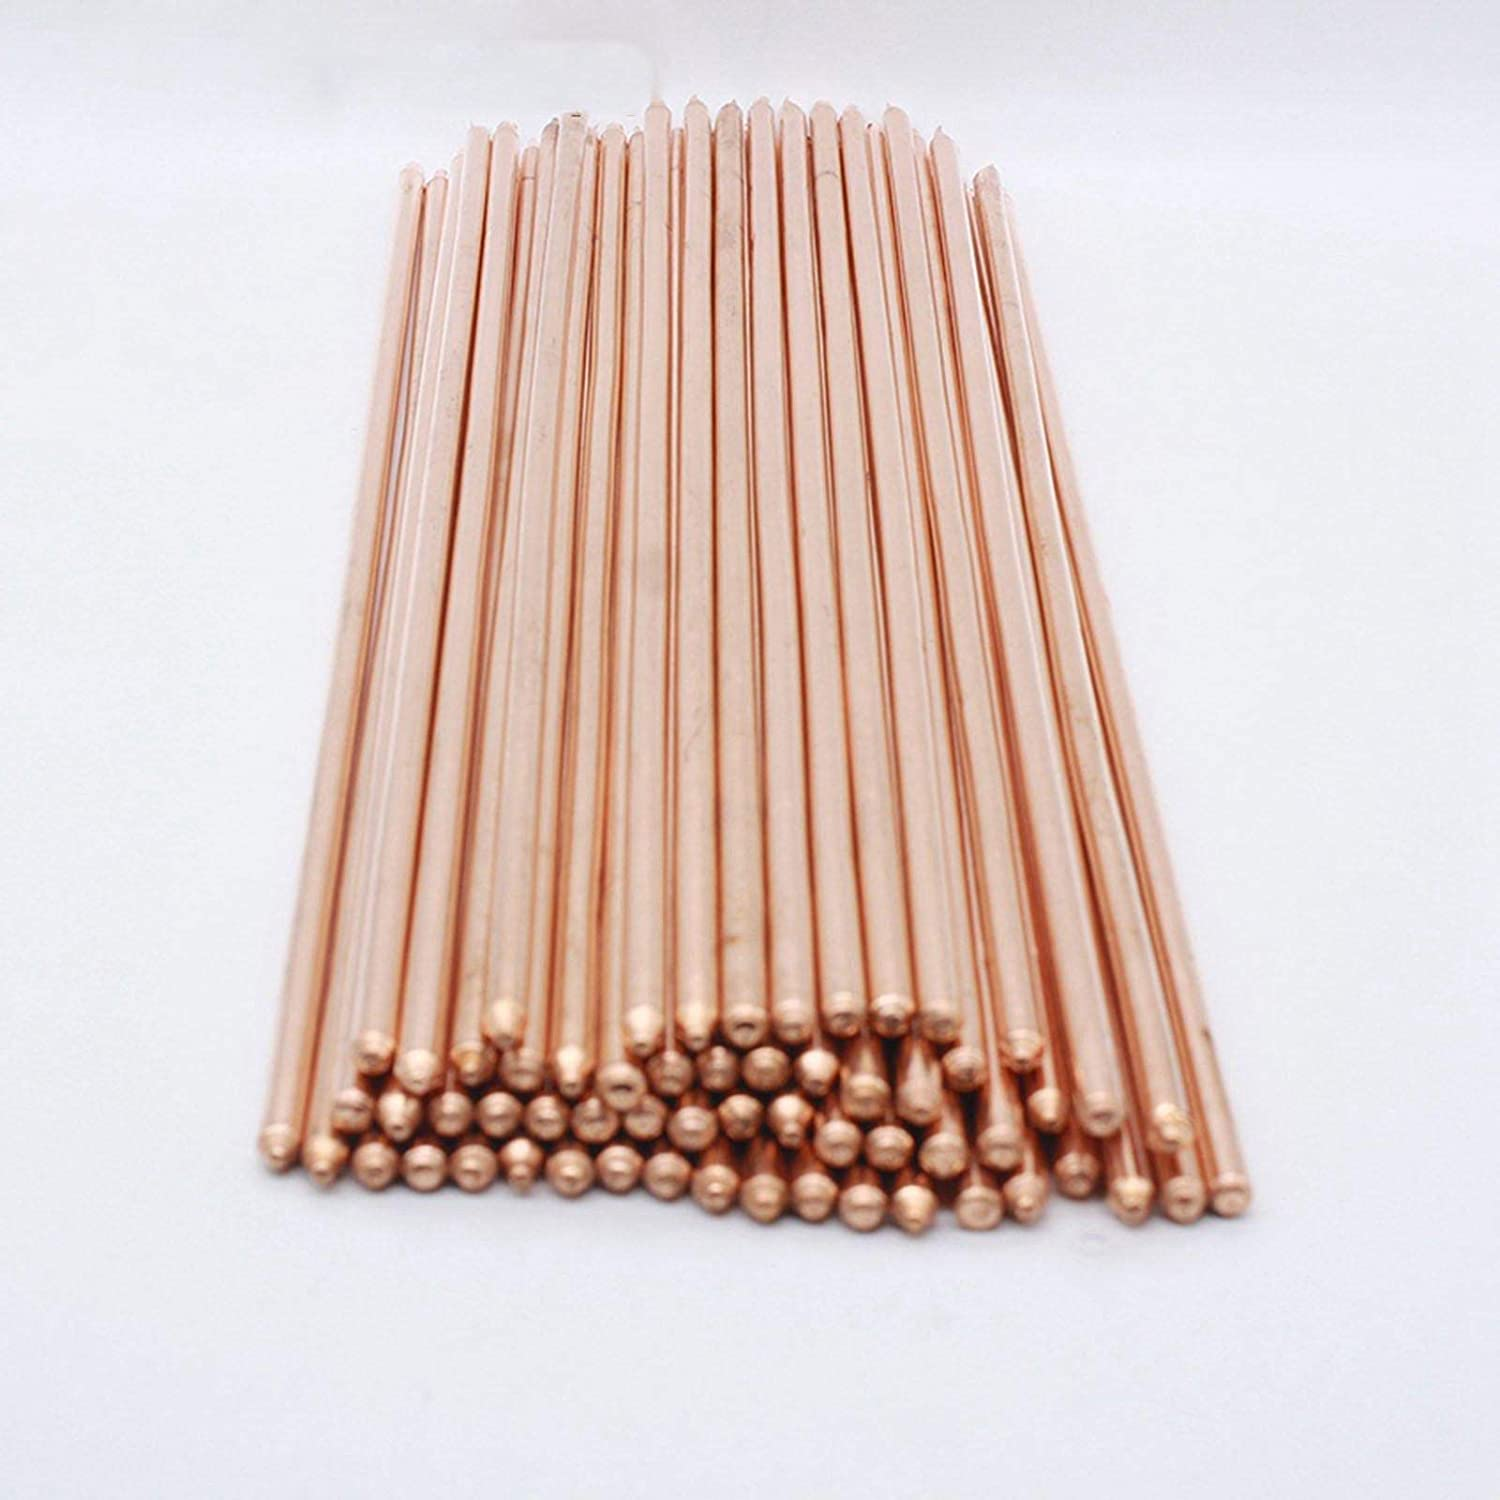 Maslin 220mm 240mm Length 10mm Diameter Cooling Round Rod Copper Heatsink Heatpipe Laptop DIY CPU - (Size: 240mm)